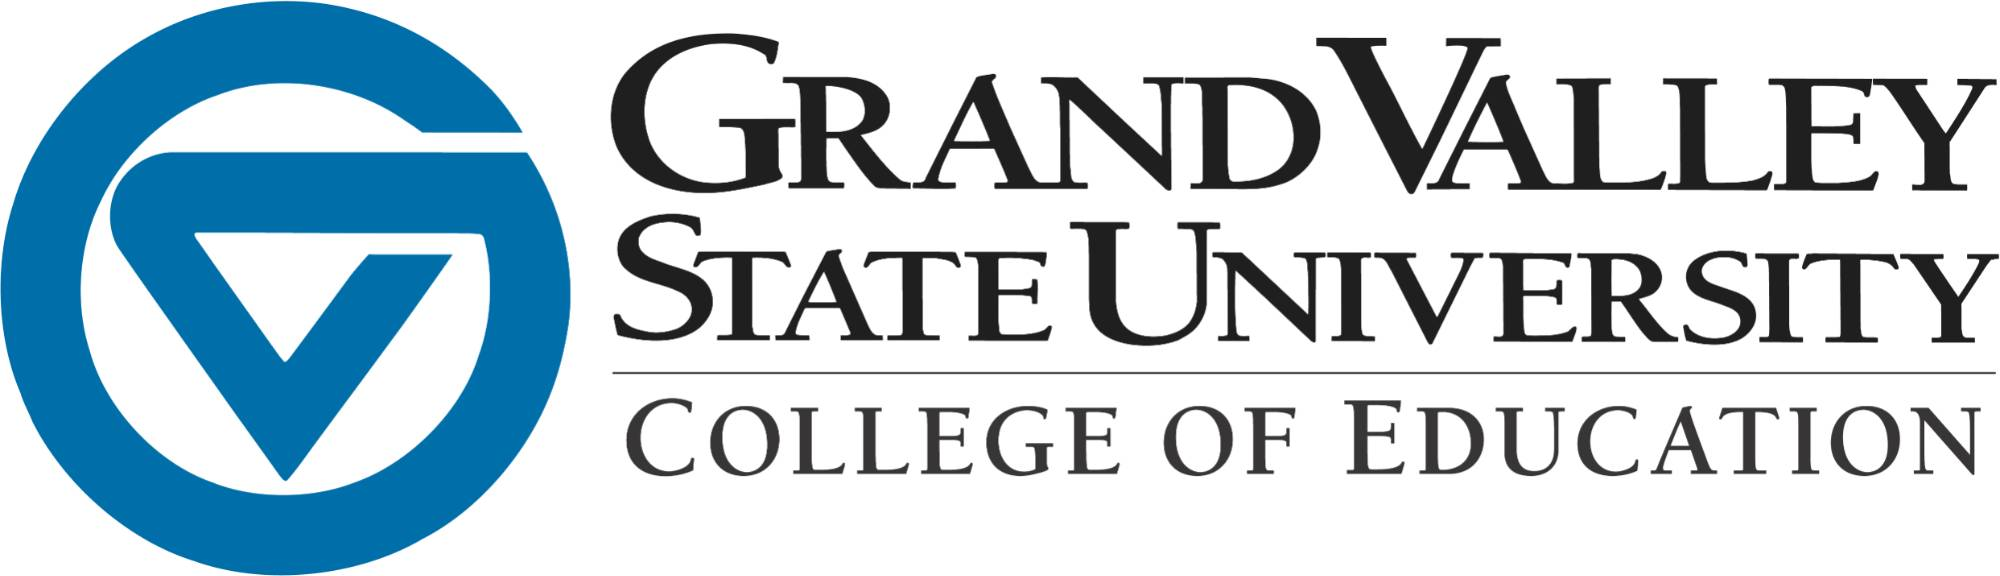 Grand Valley State University College of Education